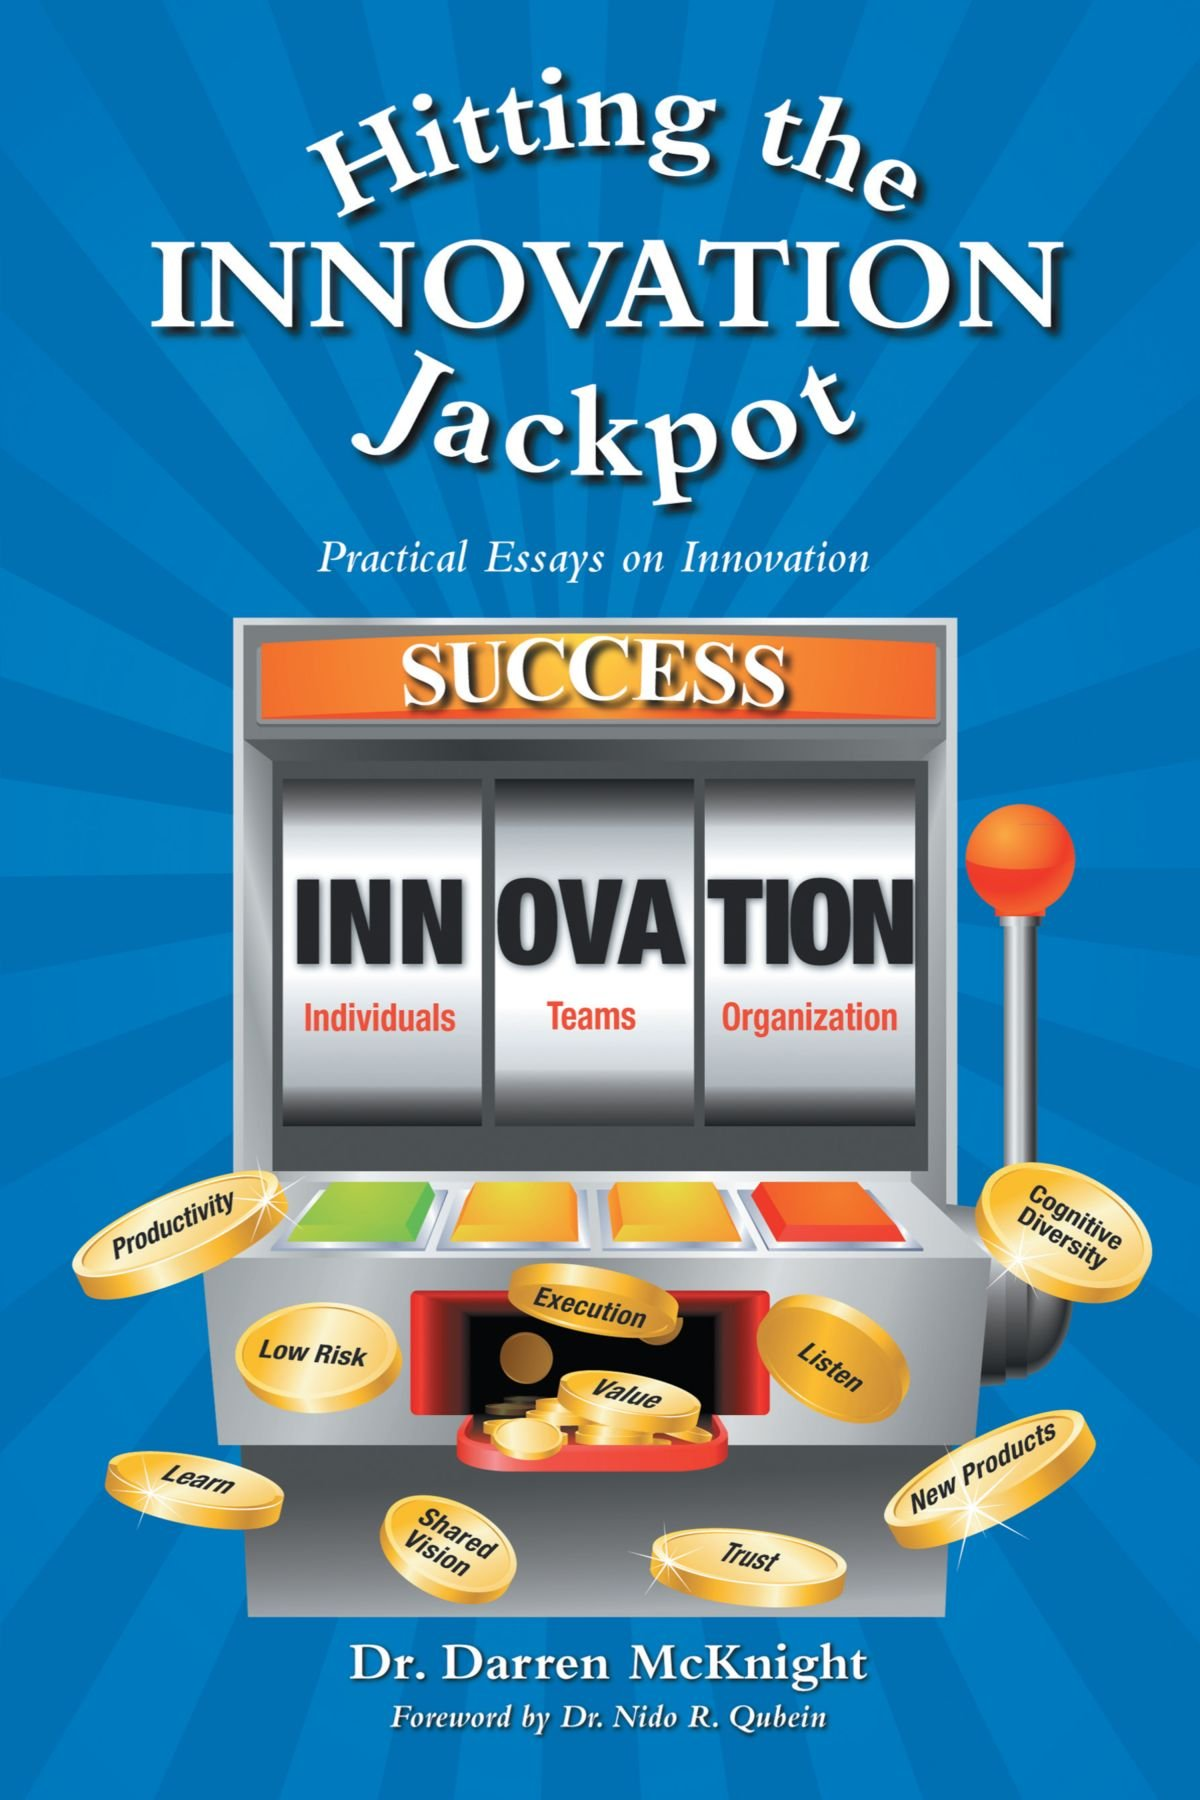 Download Hitting the Innovation Jackpot: Practical Essays on Innovation PDF